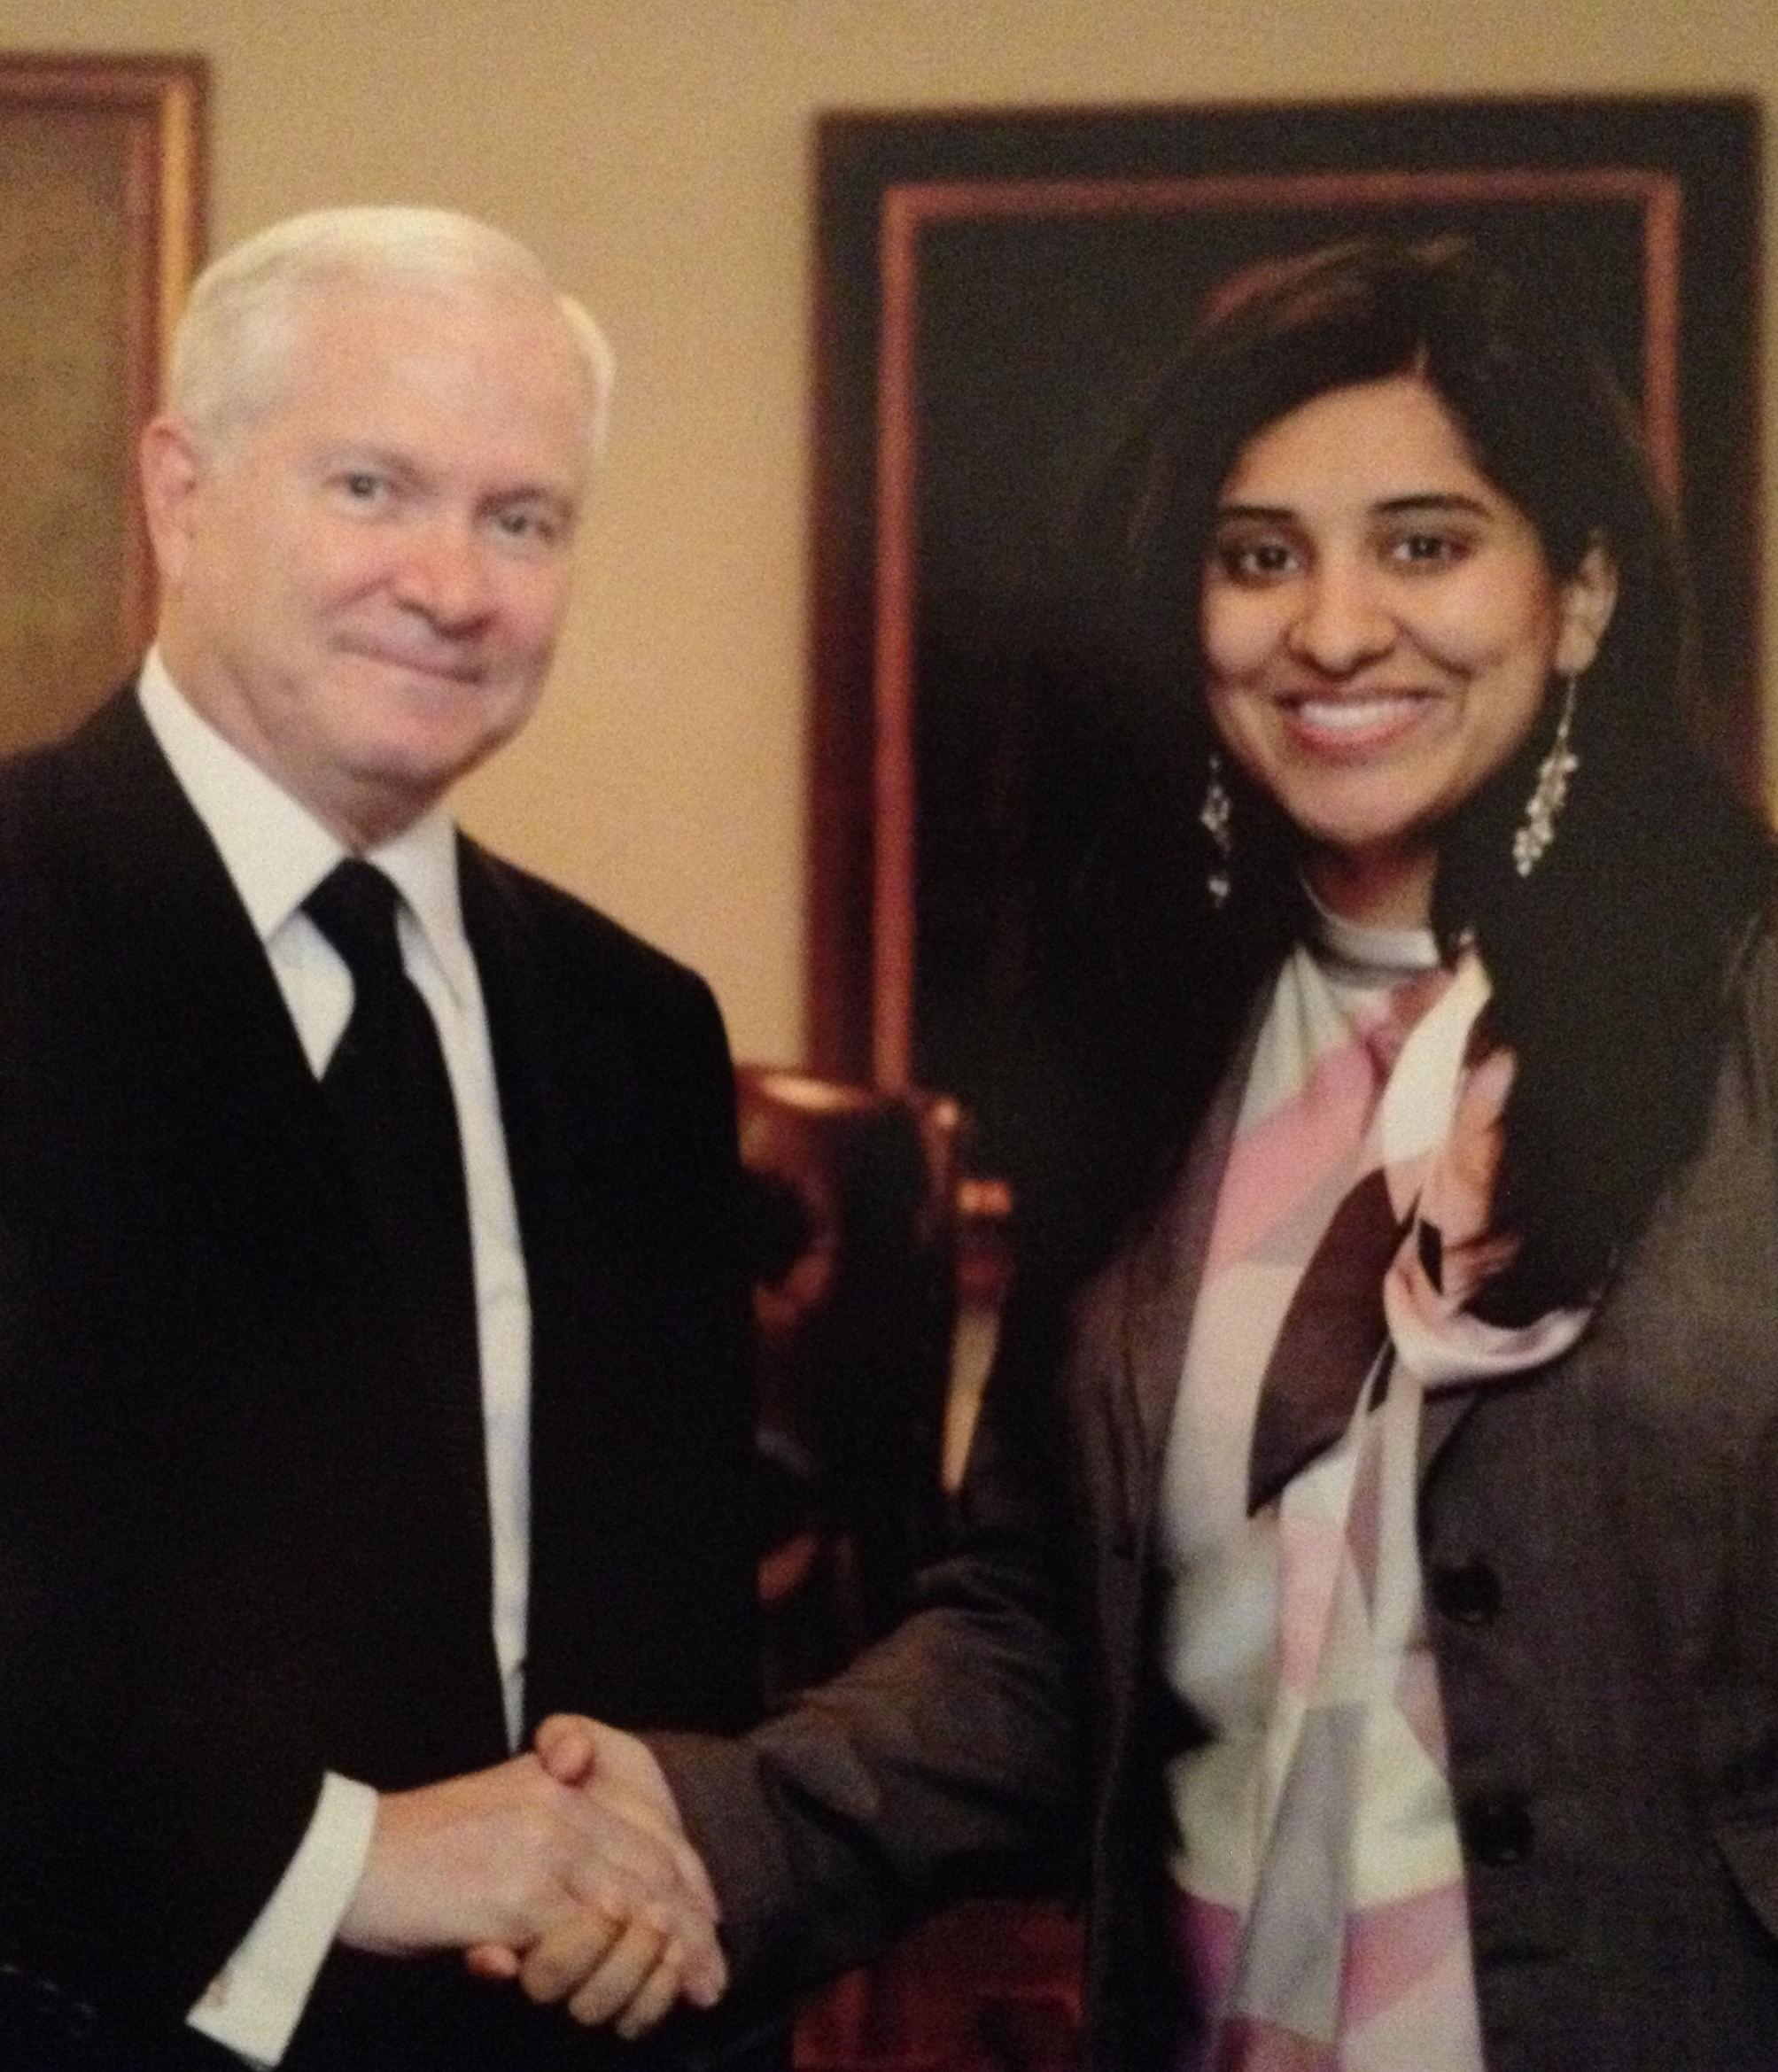 Naveen Malik with SECDEF Robert Gates